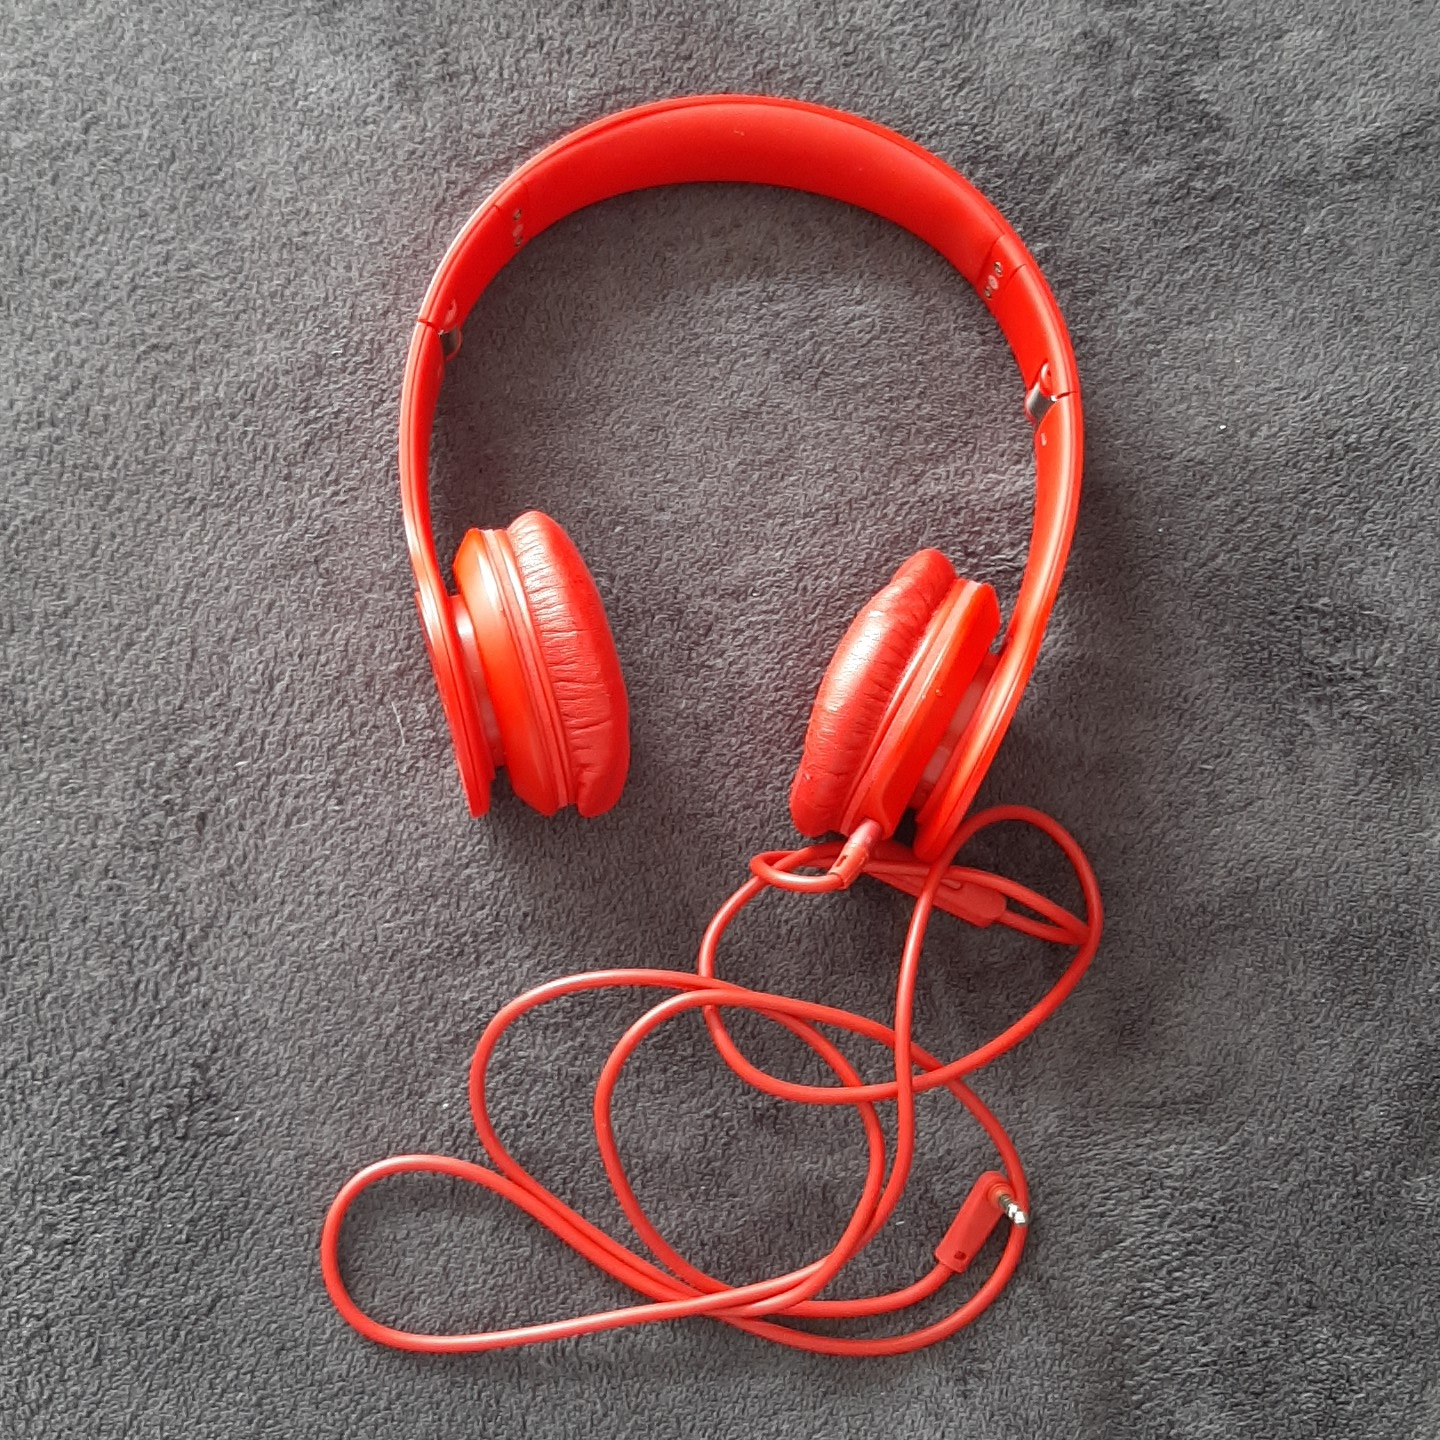 Original Red Beats Solo Hd Wired Headphones Hardly Depop